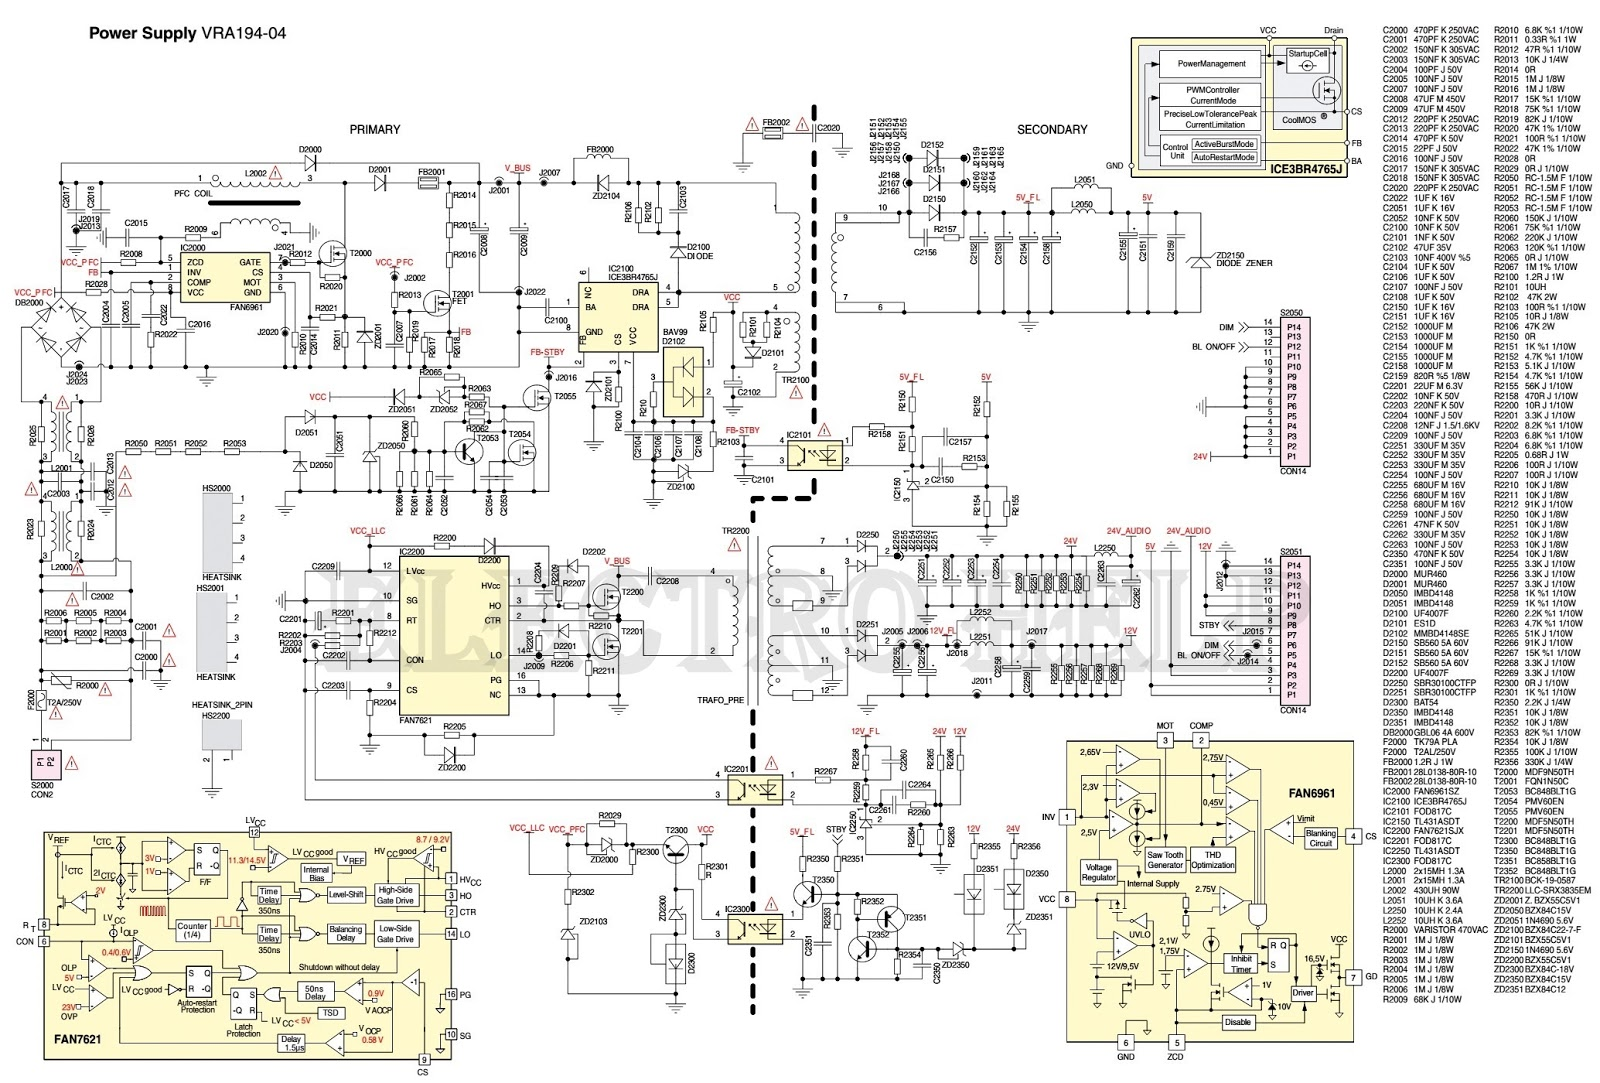 lcd tv power supply circuit diagram book diagram schema switch mode power supply circuit diagram also samsung microwave wiring [ 1600 x 1083 Pixel ]